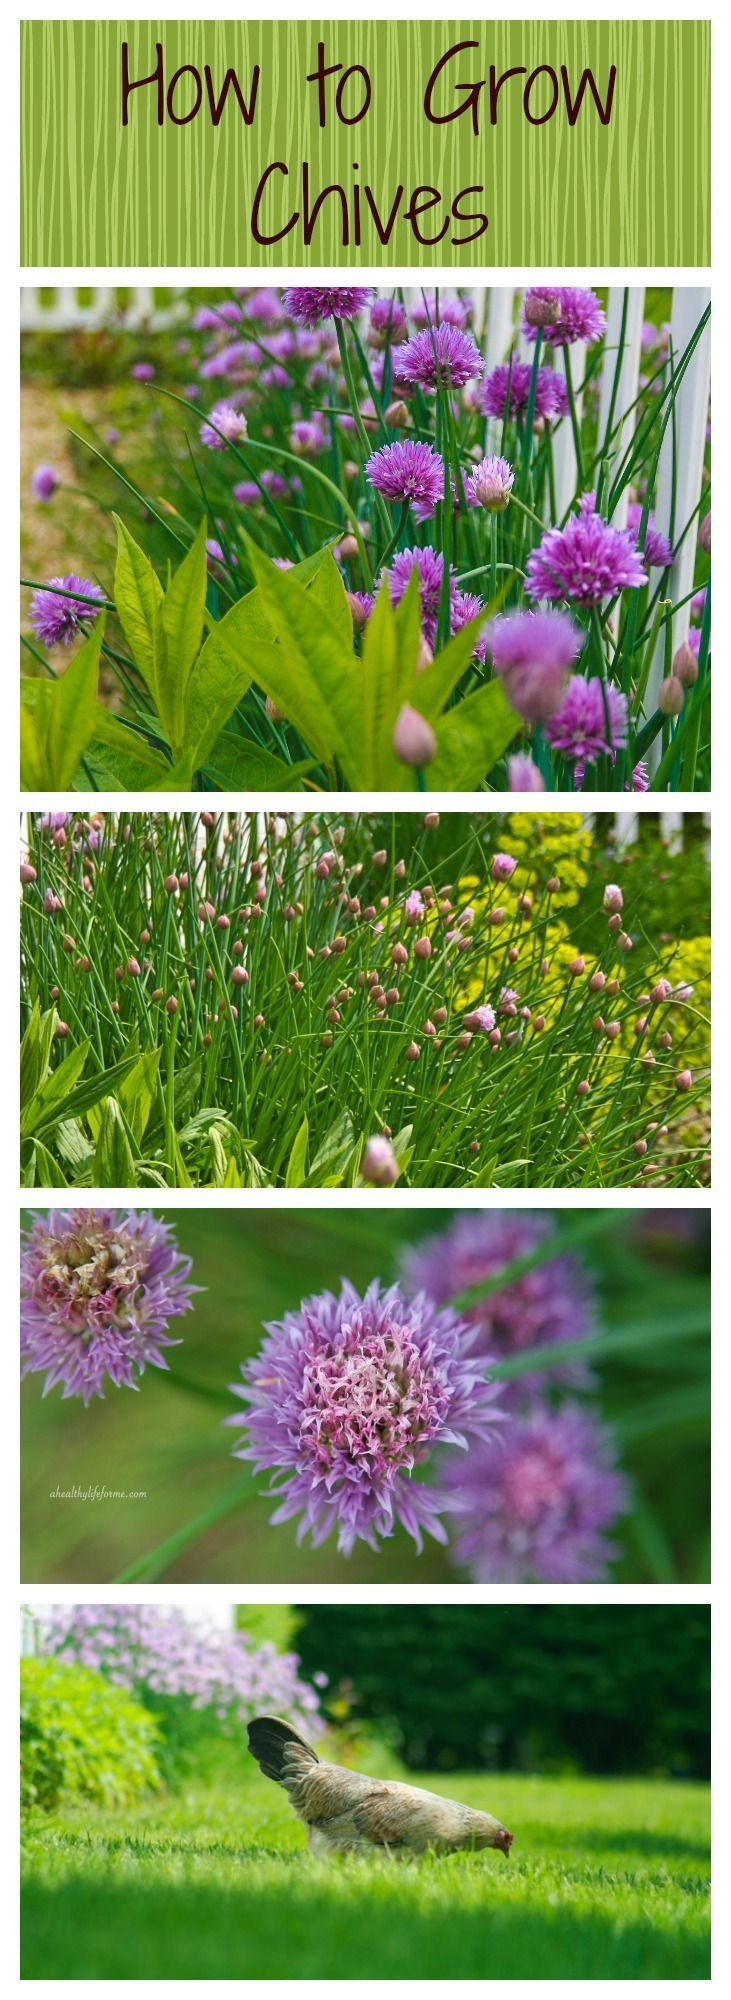 How to Grow and Care for Chives.  These beautiful and easy spring bloomers add a bright beautiful color to the garden and offer healthy benefits to our meals.  Learn more http://ahealthylifeforme.com/2012/04/21/how-to-grow-chives/ #HowToGrowChives #HowTo #Herbs #Gardening #VegetableGardening